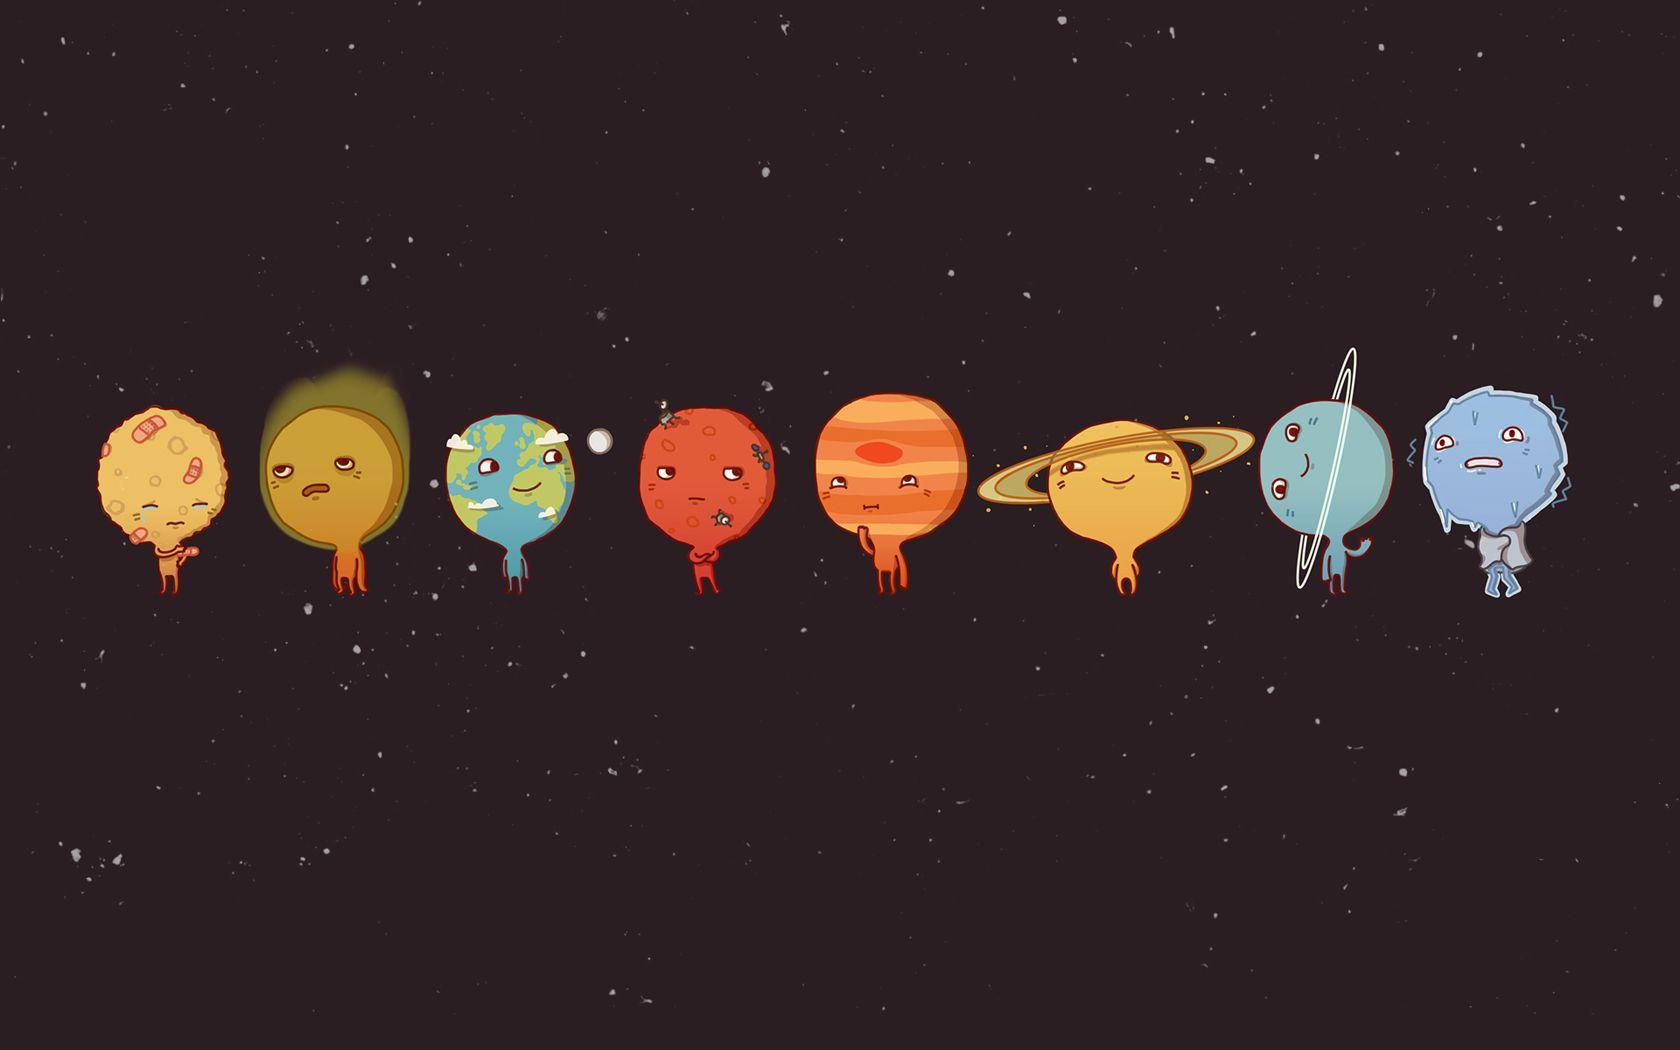 1680x1050 - Solar System Wallpapers 17